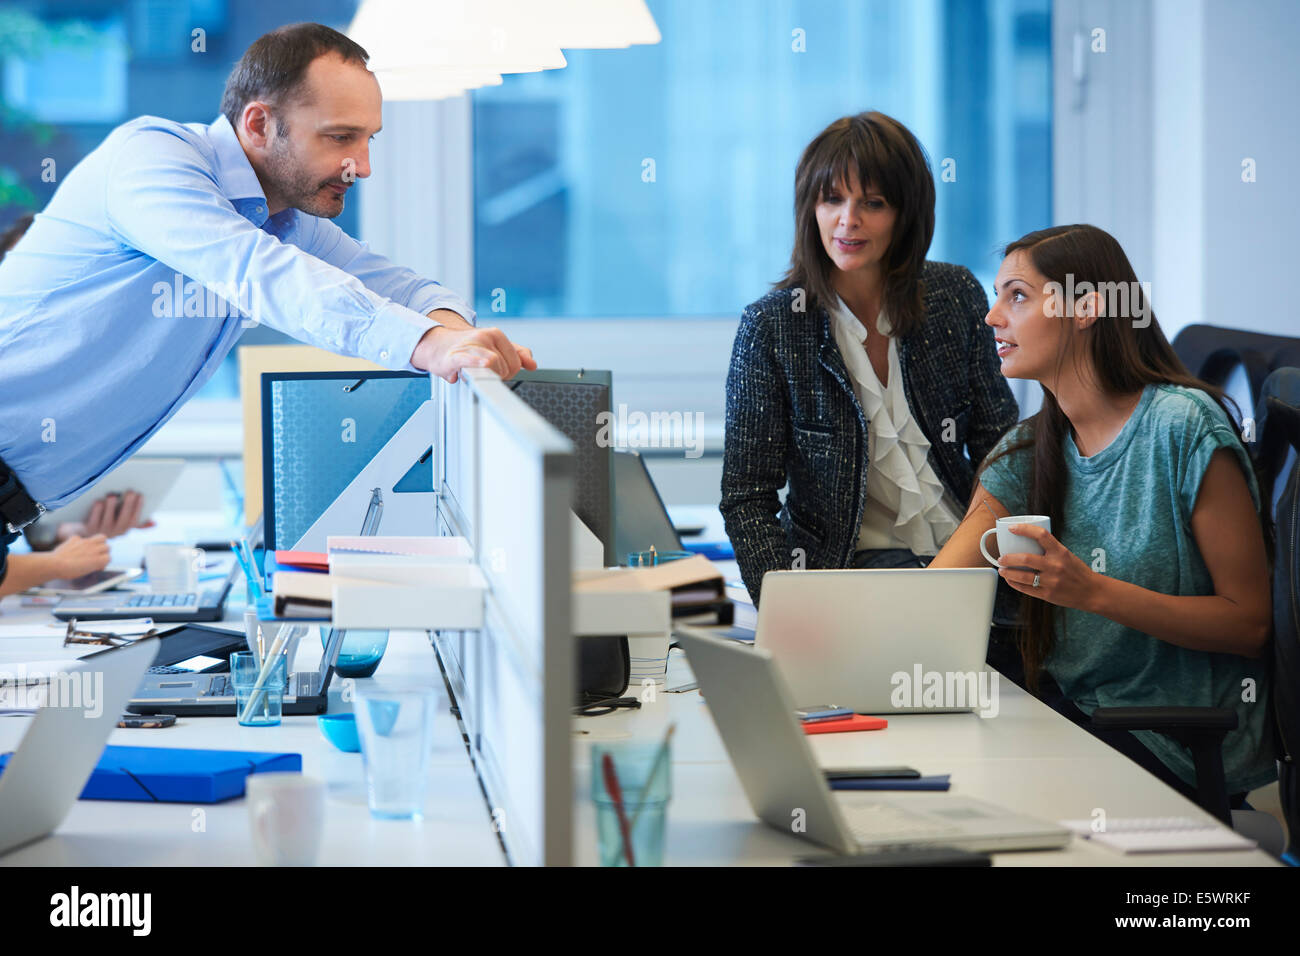 Man leaning over screen partition, speaking to colleagues - Stock Image